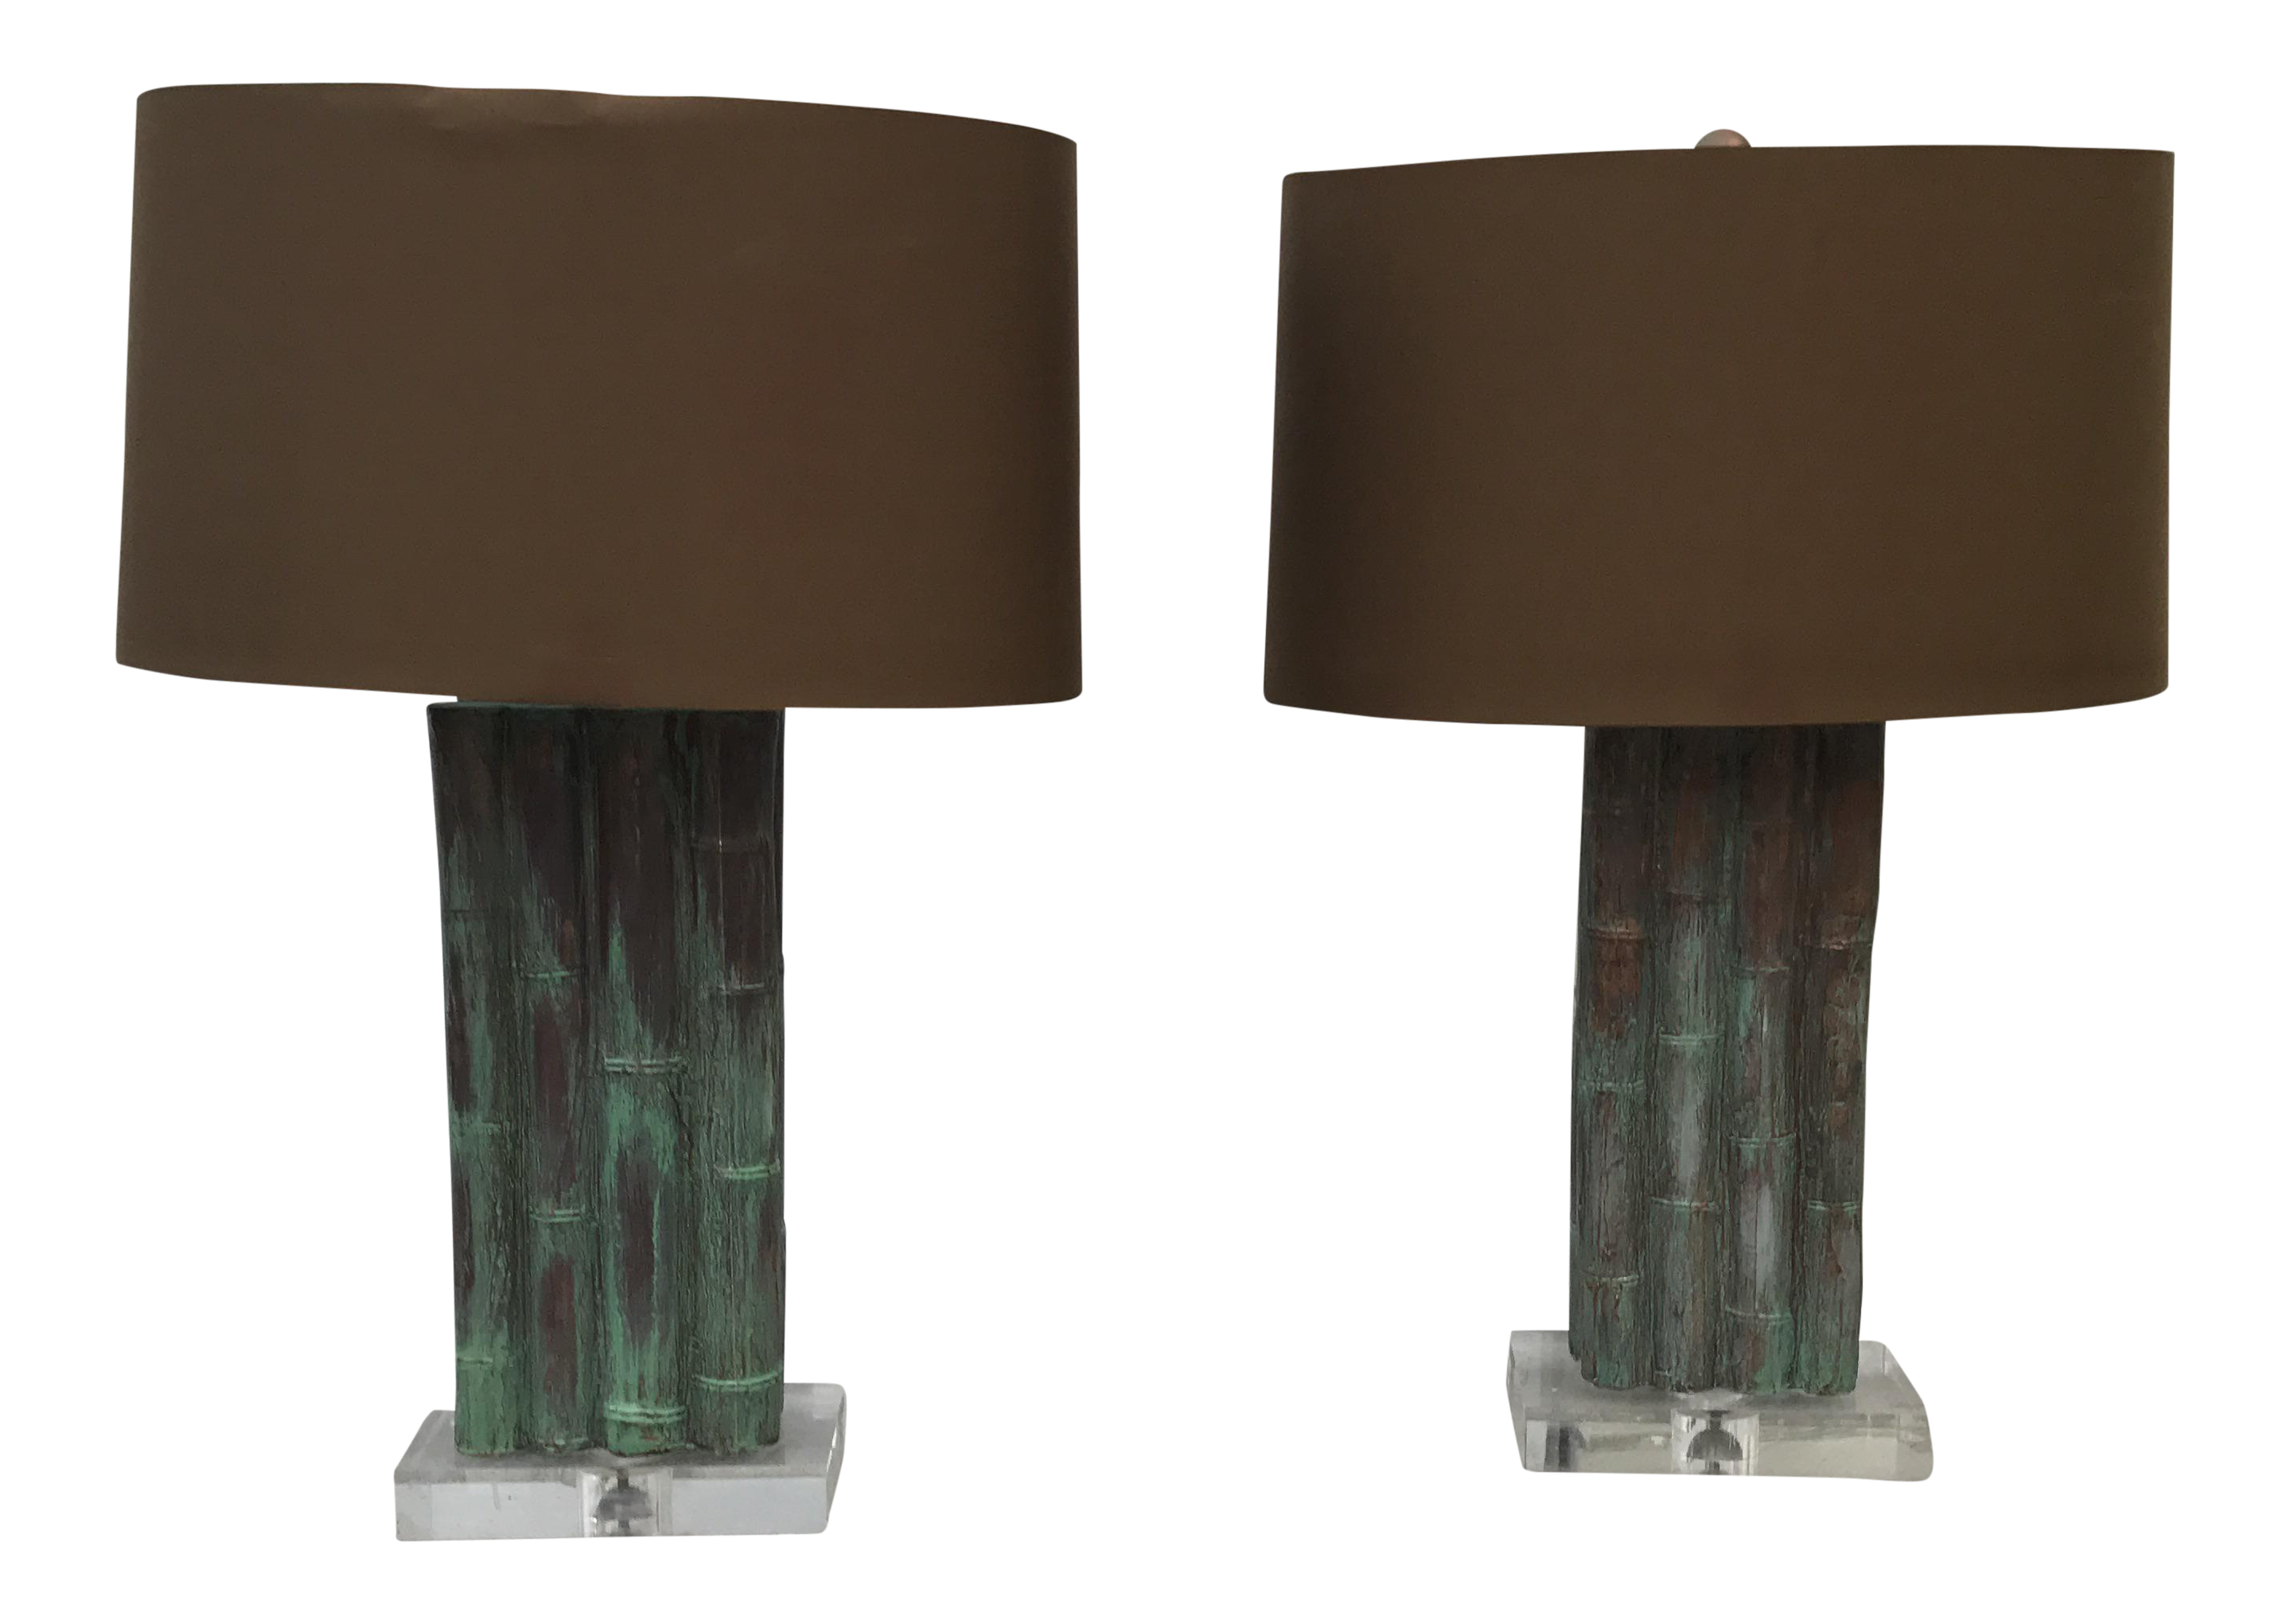 Arteriors Tanner Kenzie Lucite U0026 Bamboo Lamps With Shades   A Pair